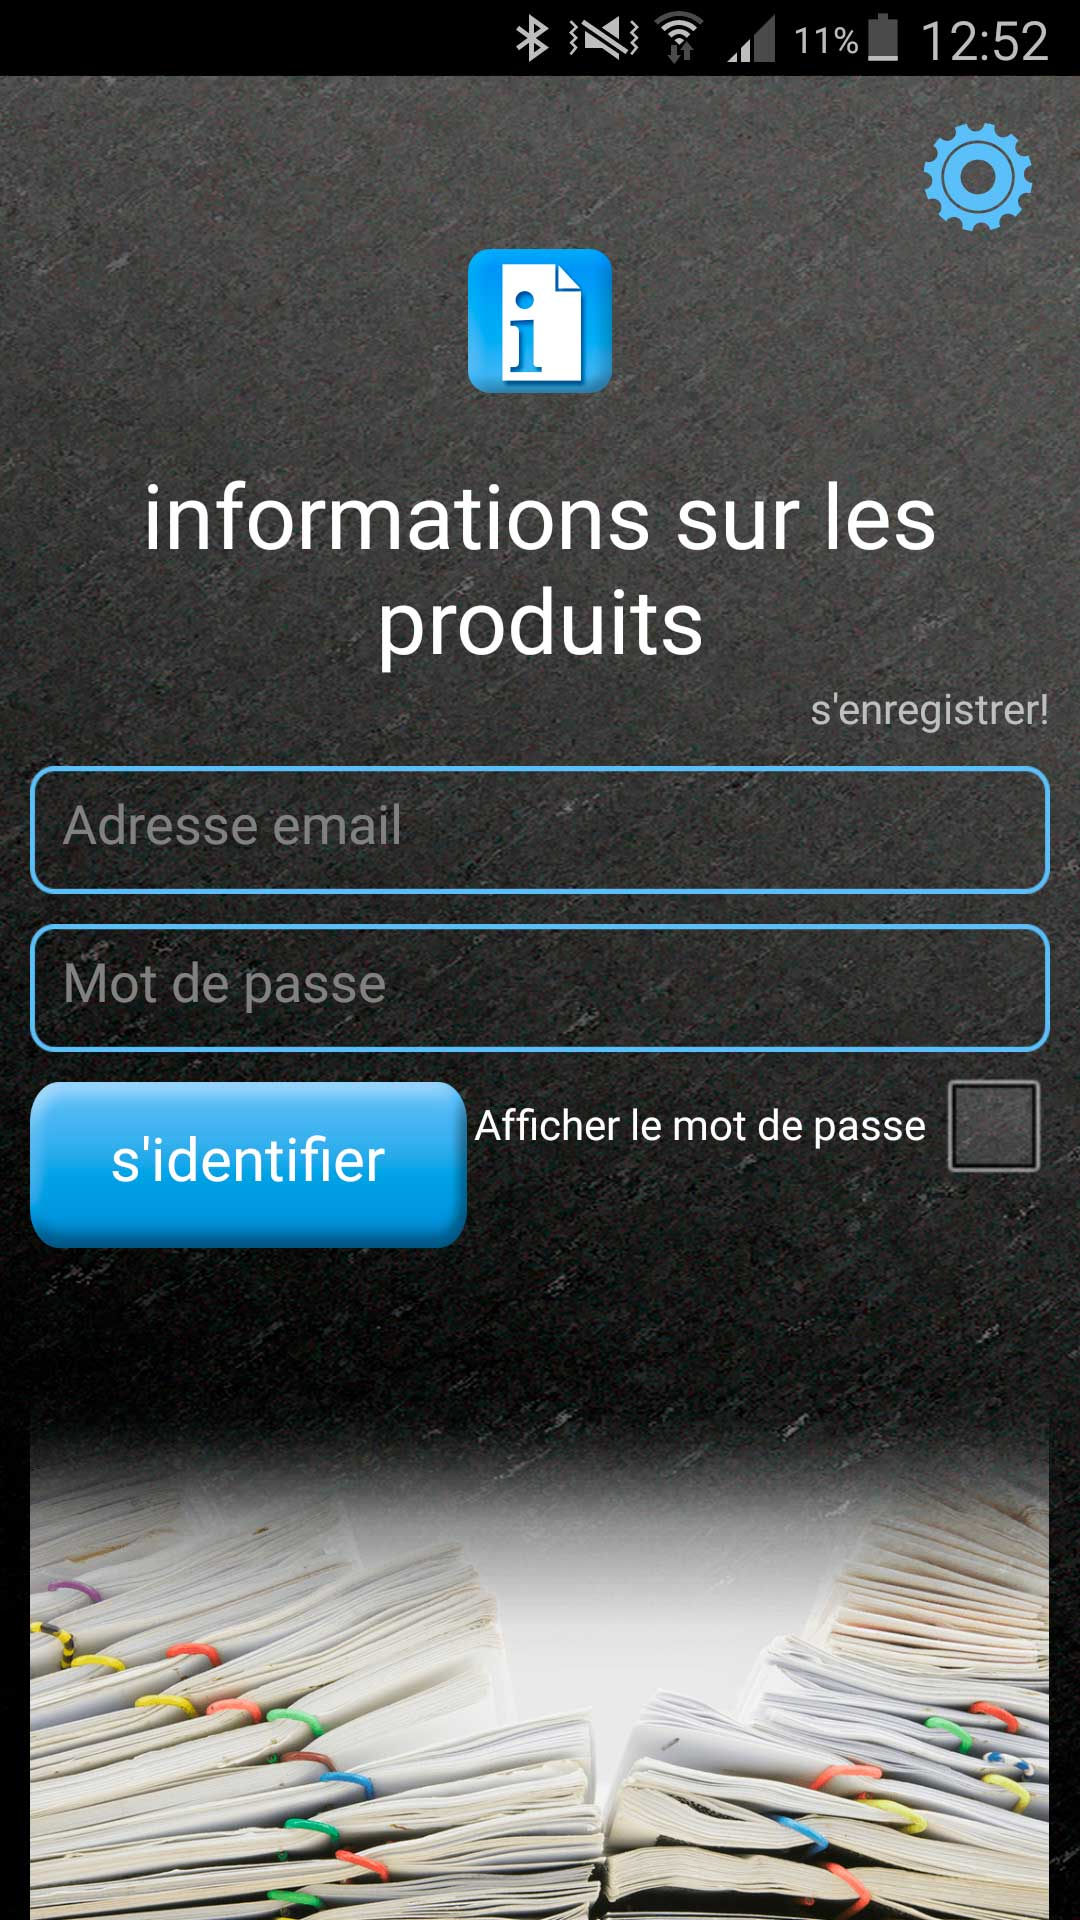 ginstr_app_productInformation_FR_1